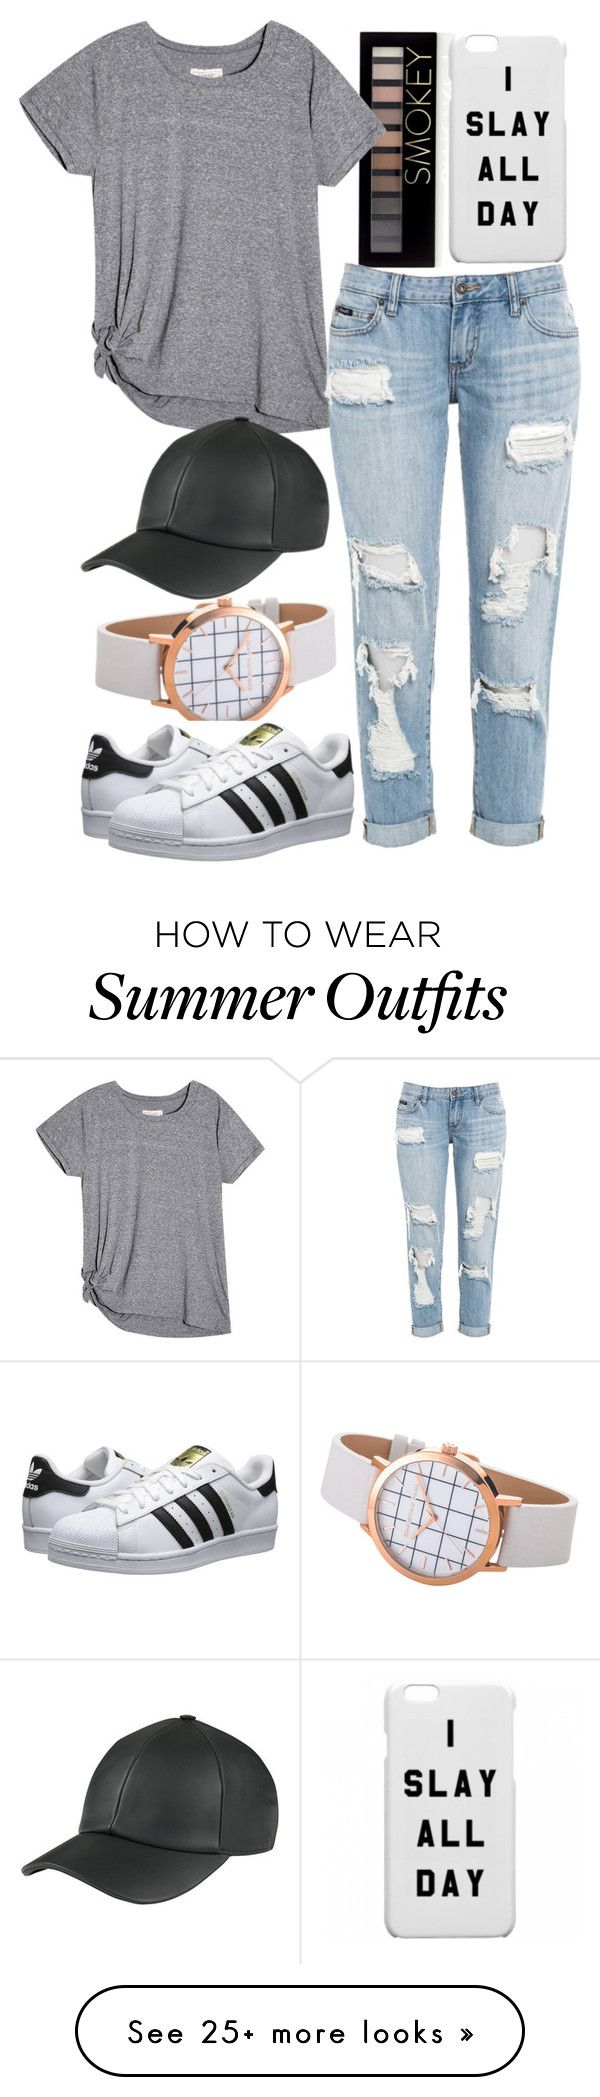 """Casual SPring/Summer outfit"" by beautyandstylefox on Polyvore featuring Forever 21, adidas Originals, adidas, hat, watch, SmokeyEye and slay"